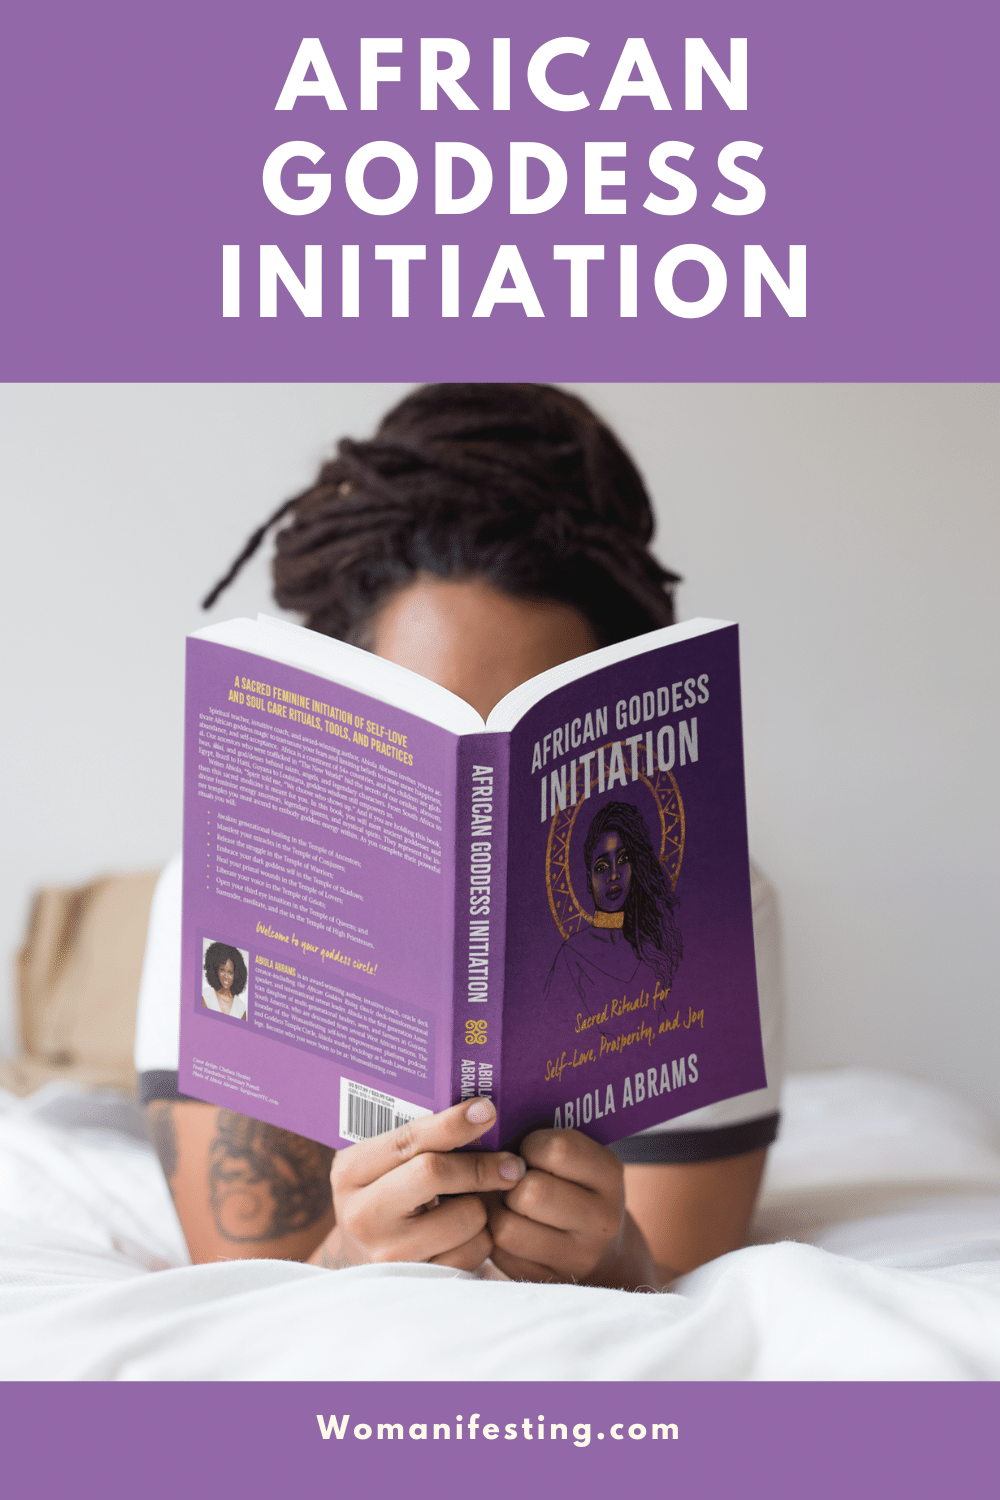 African Goddess Initiation: About My New Book of Sacred Rituals [Video]